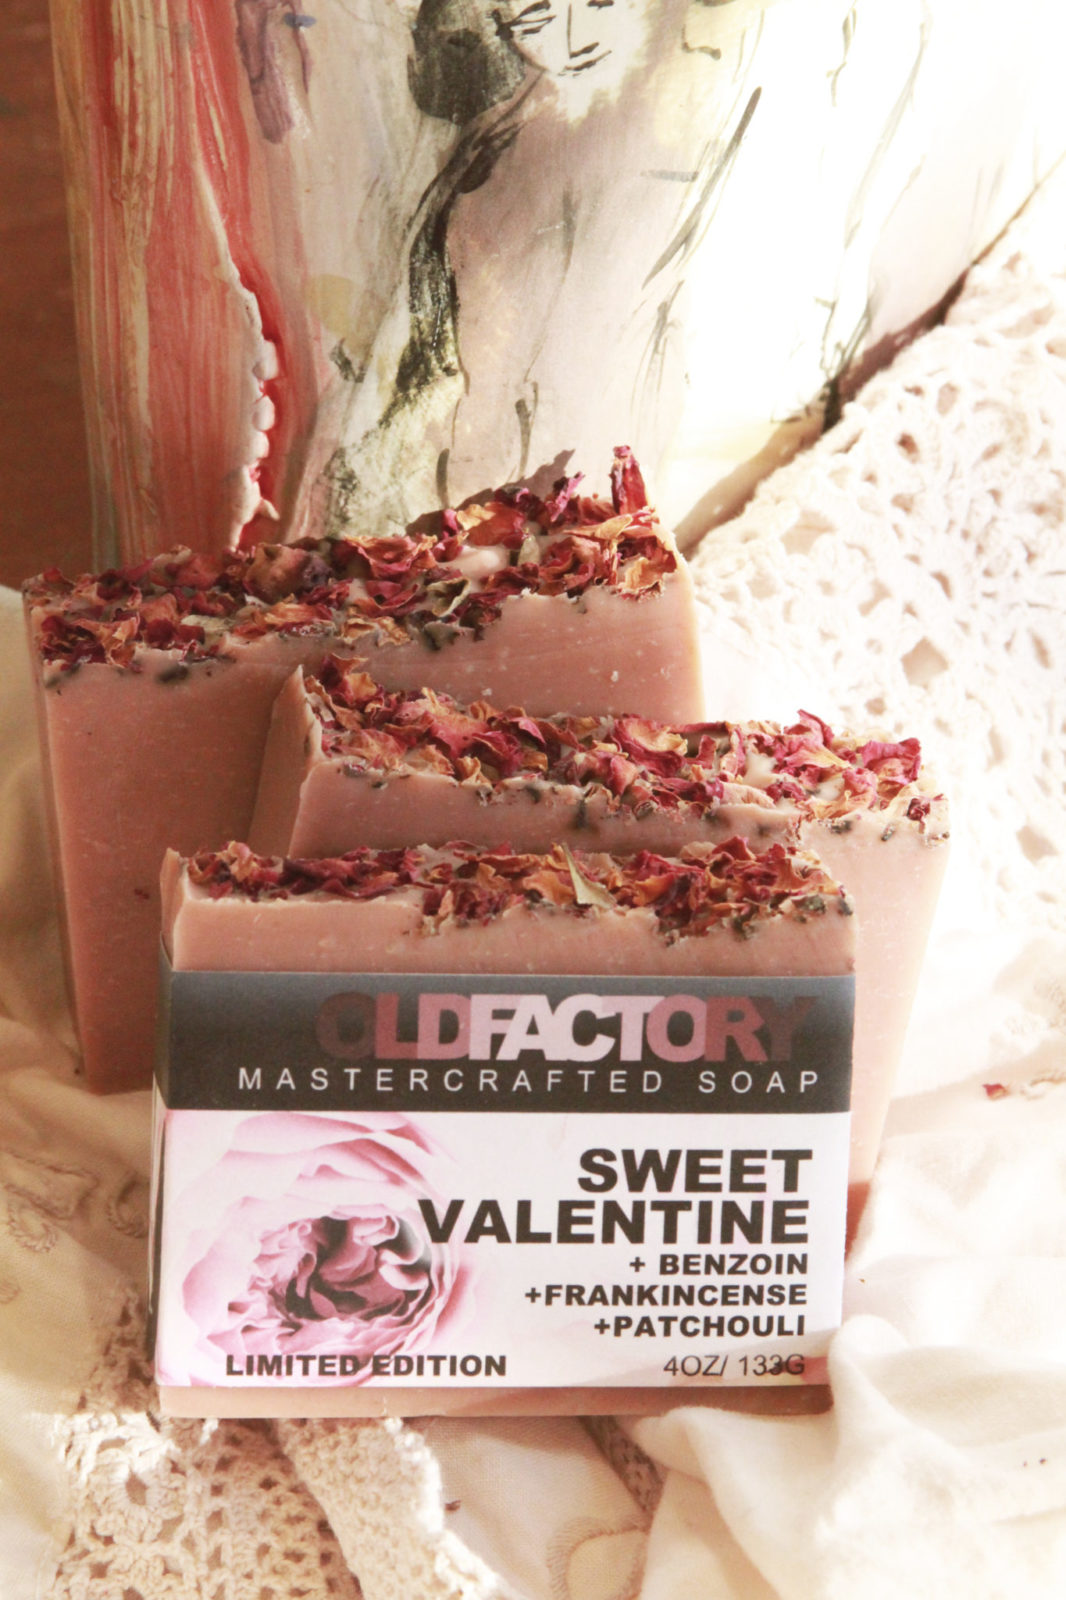 Valentines Day Limited Edition Soap by Old Factory with Patchouli, Frankincense, Benzoin and Rose Petals Handmade Blanco Texas